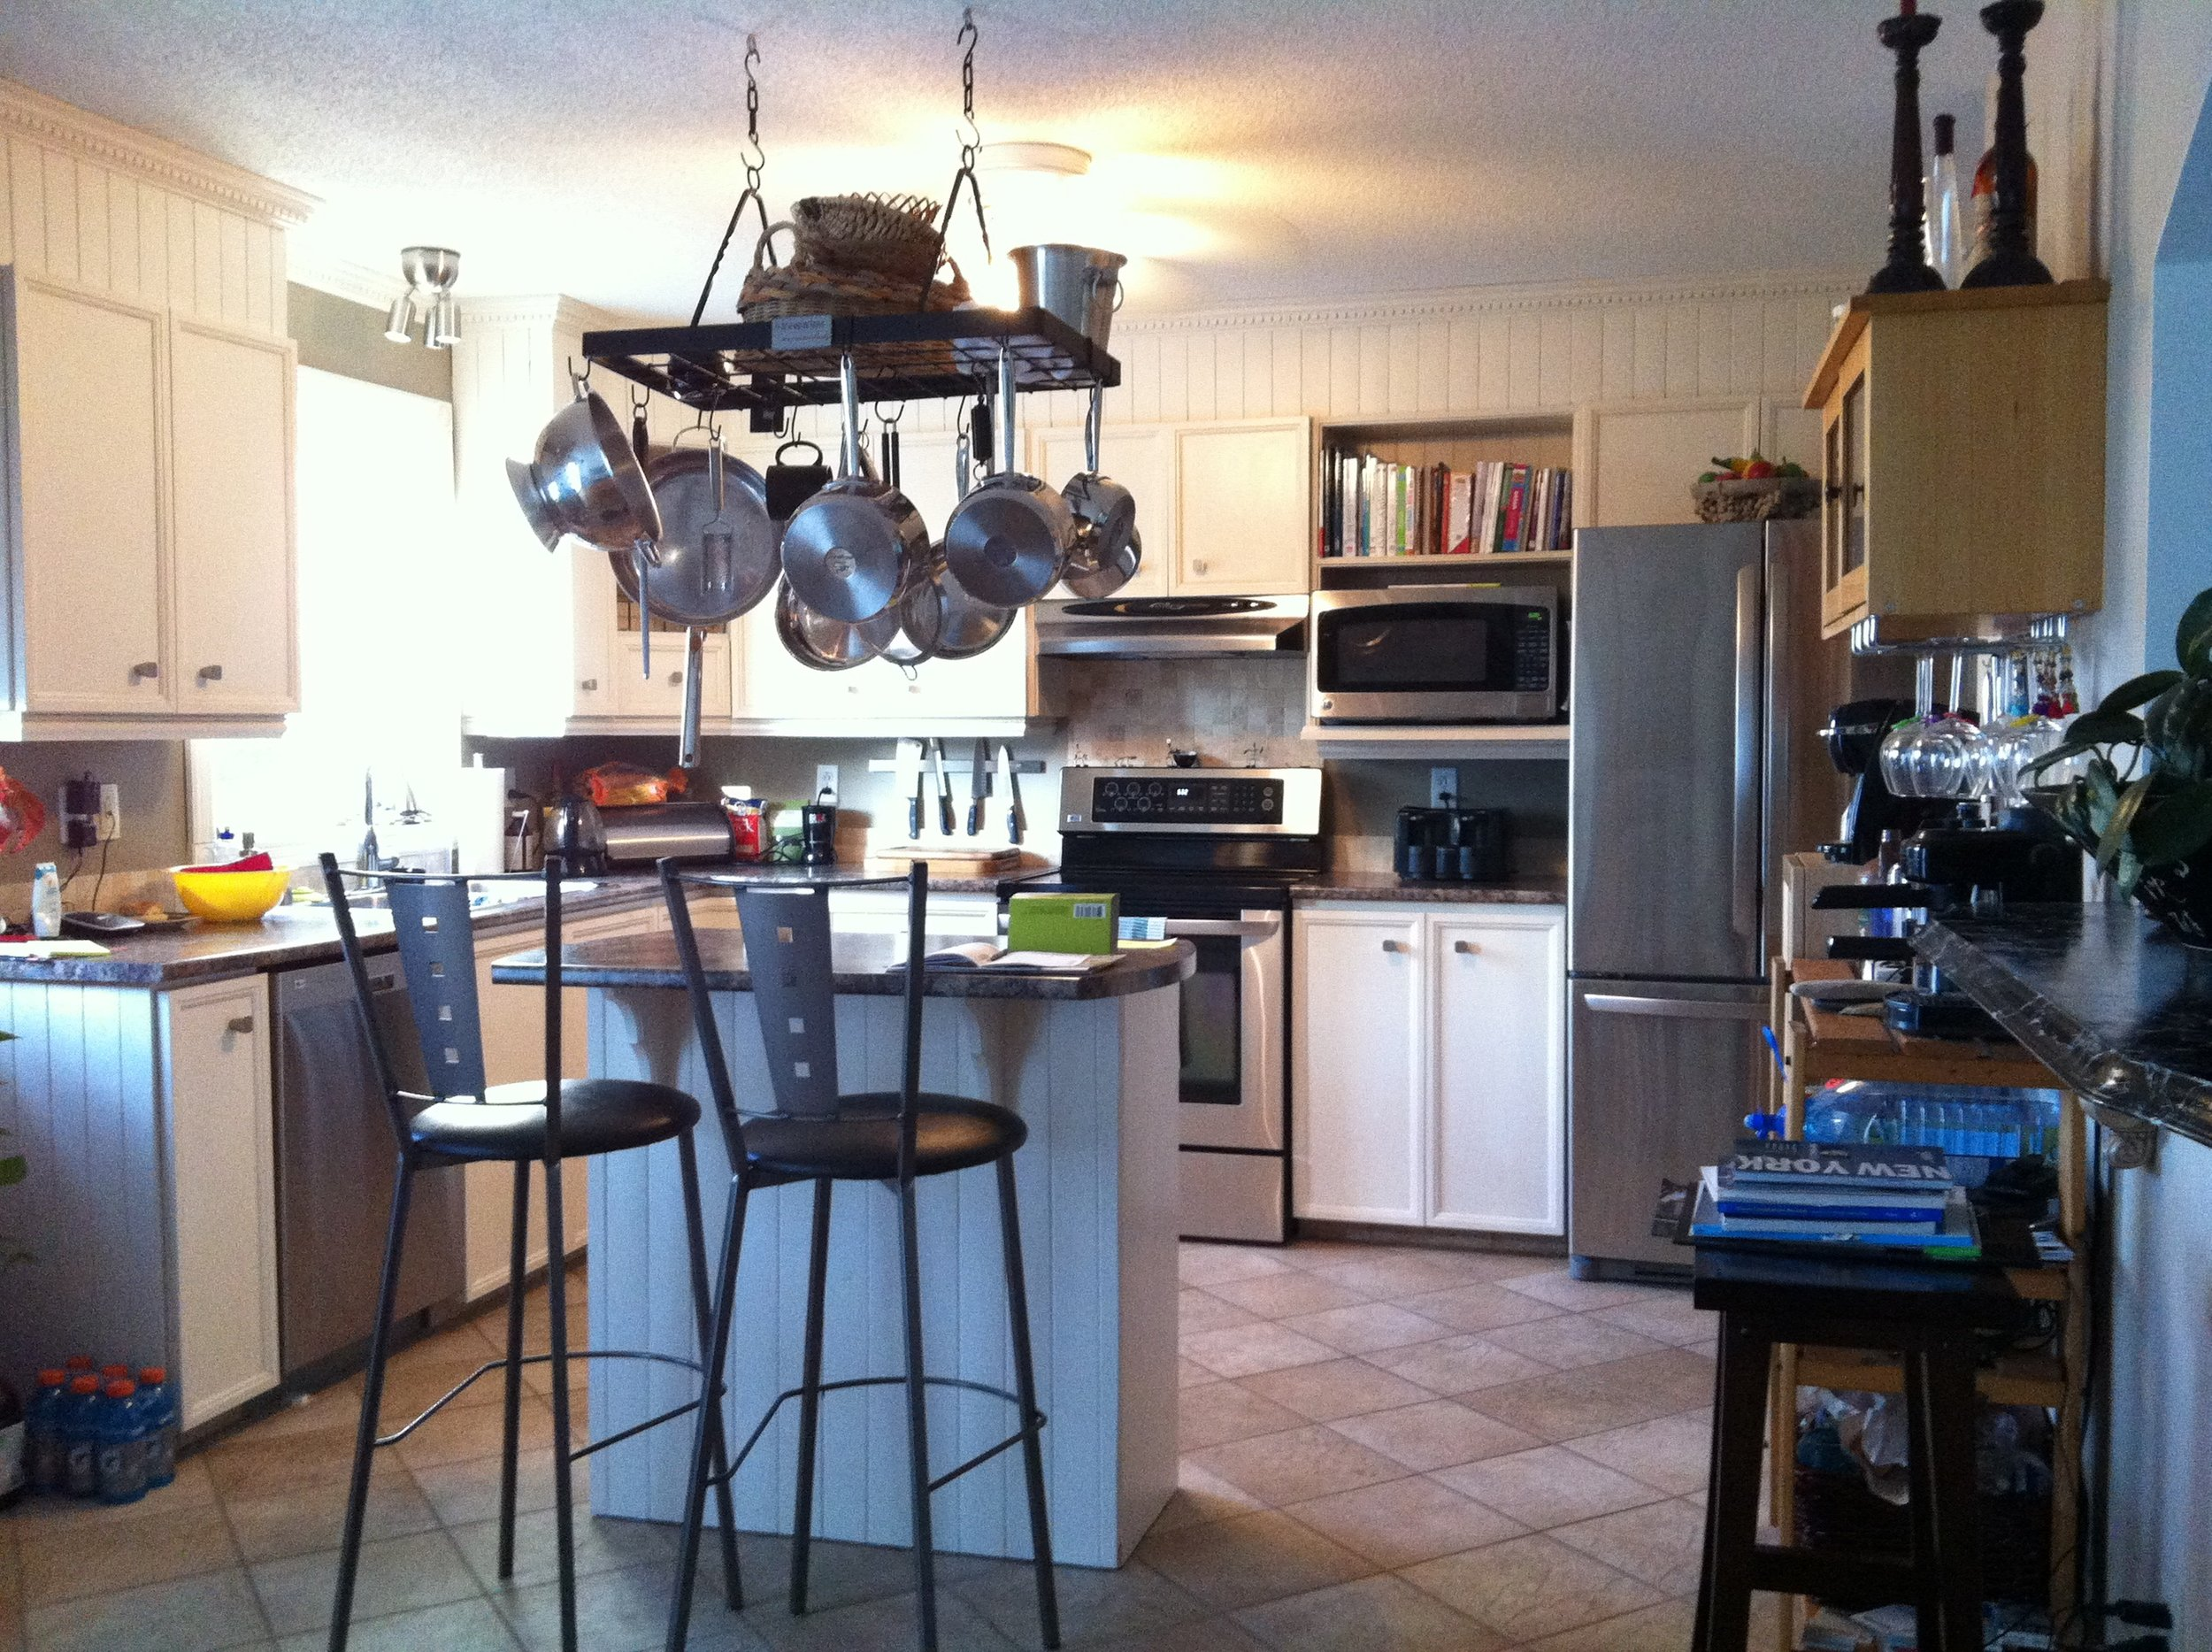 BEFORE: Existing L-shaped kitchen was inefficiently laid out and dated in appearance.